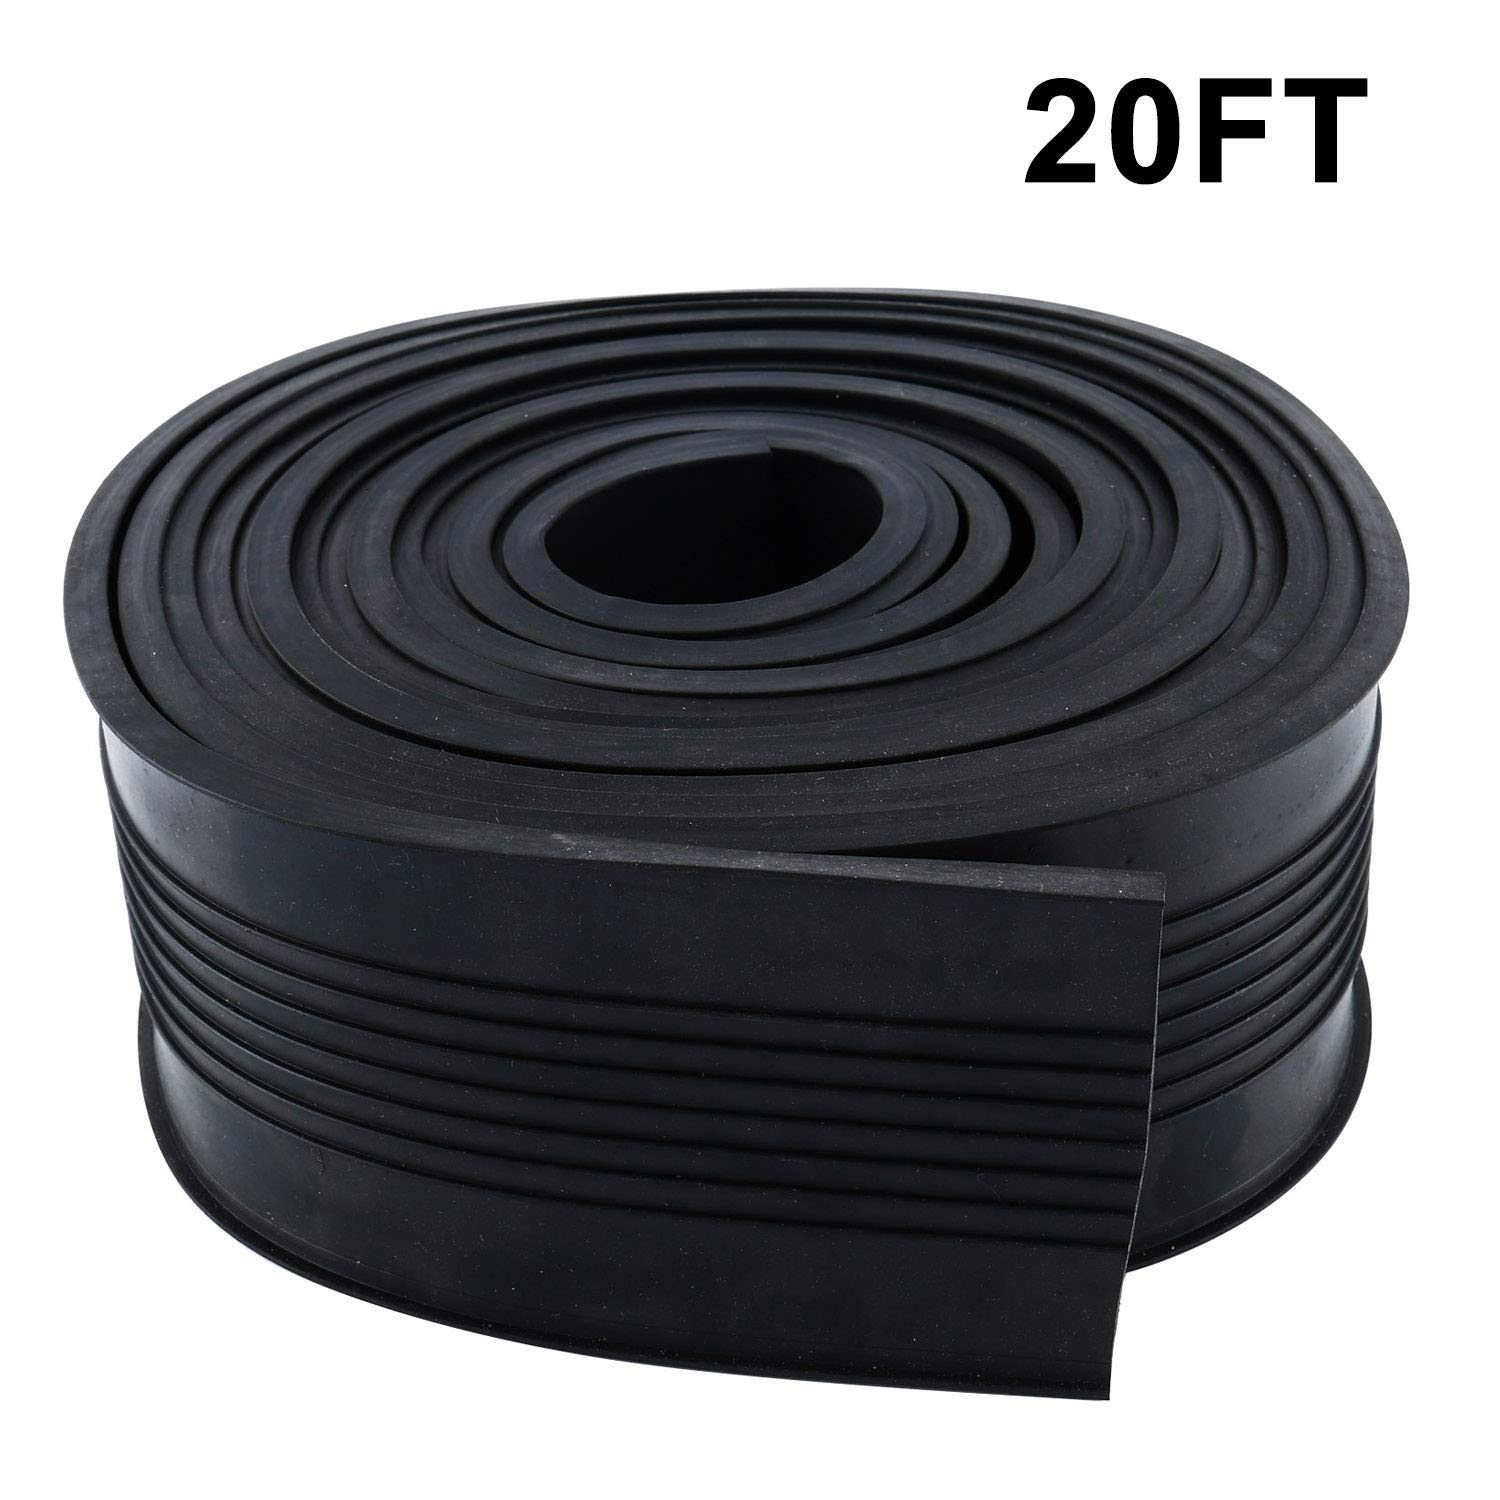 Homend Garage Door Bottom Weather Stripping Rubber Seal Strip Replacement, 5/16'' T Ends, 3 3/4'' Width X 20 Feet Lenth (Black) by Homend (Image #9)